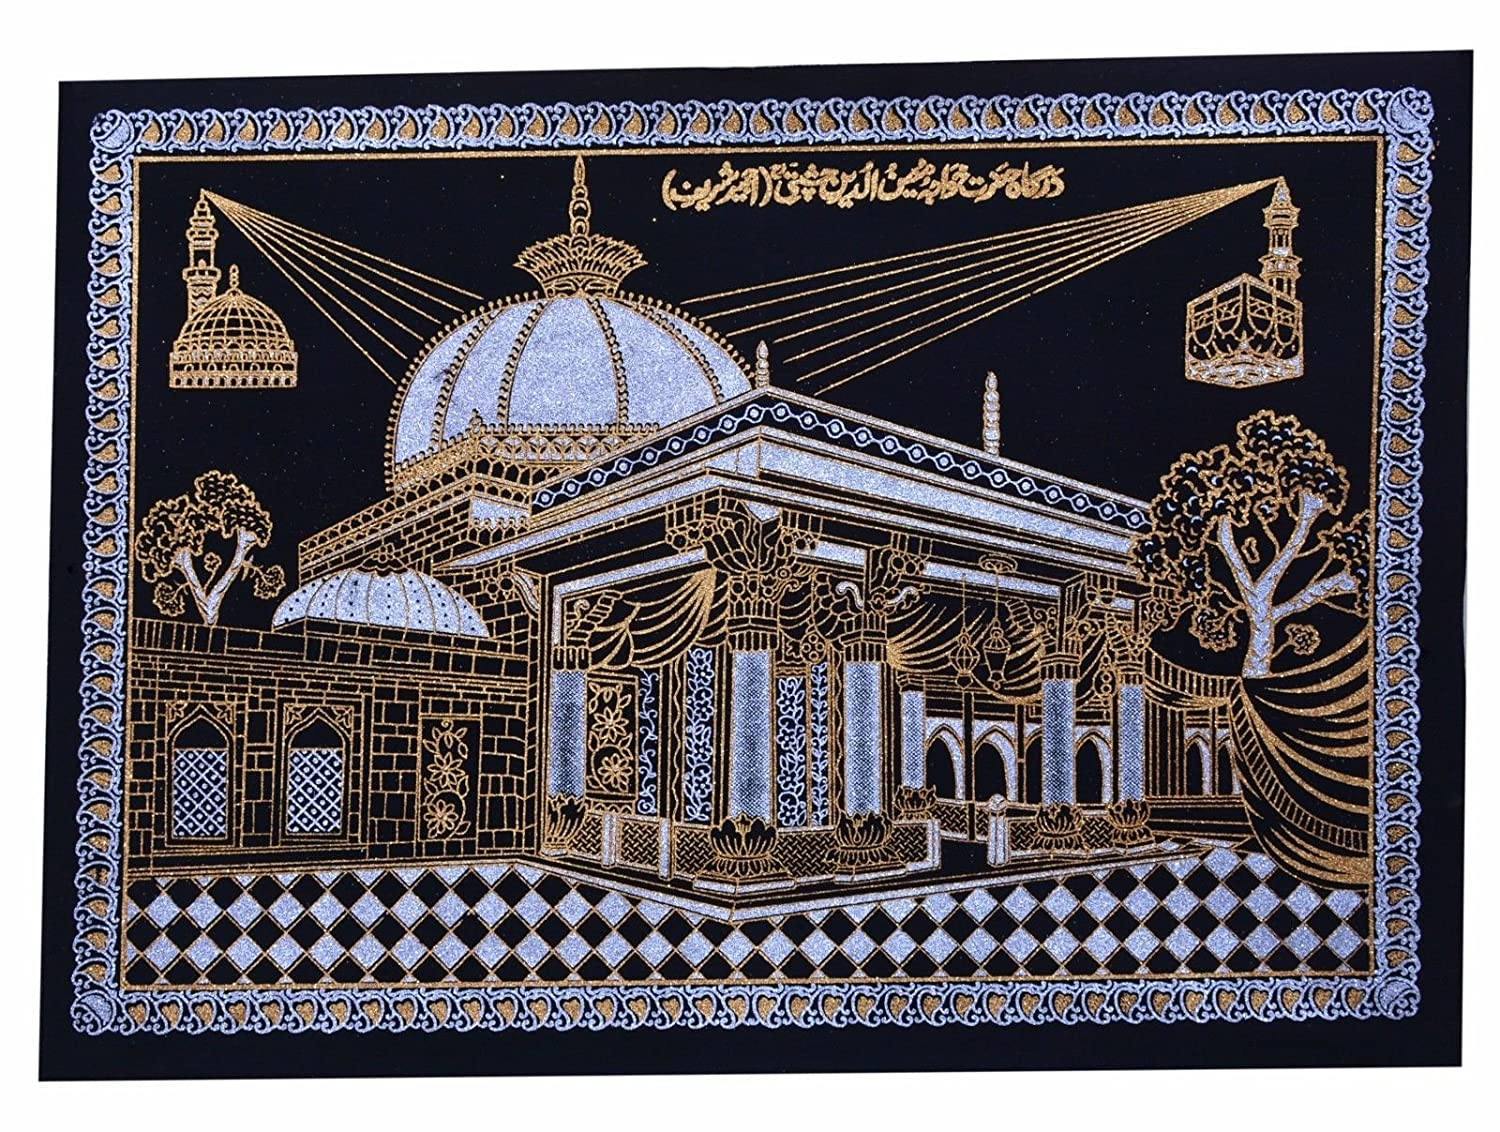 Buy ajmer sharif islamic art khwaja garib nawaj kalma shining buy ajmer sharif islamic art khwaja garib nawaj kalma shining printed wall hanging online at low prices in india amazon thecheapjerseys Image collections